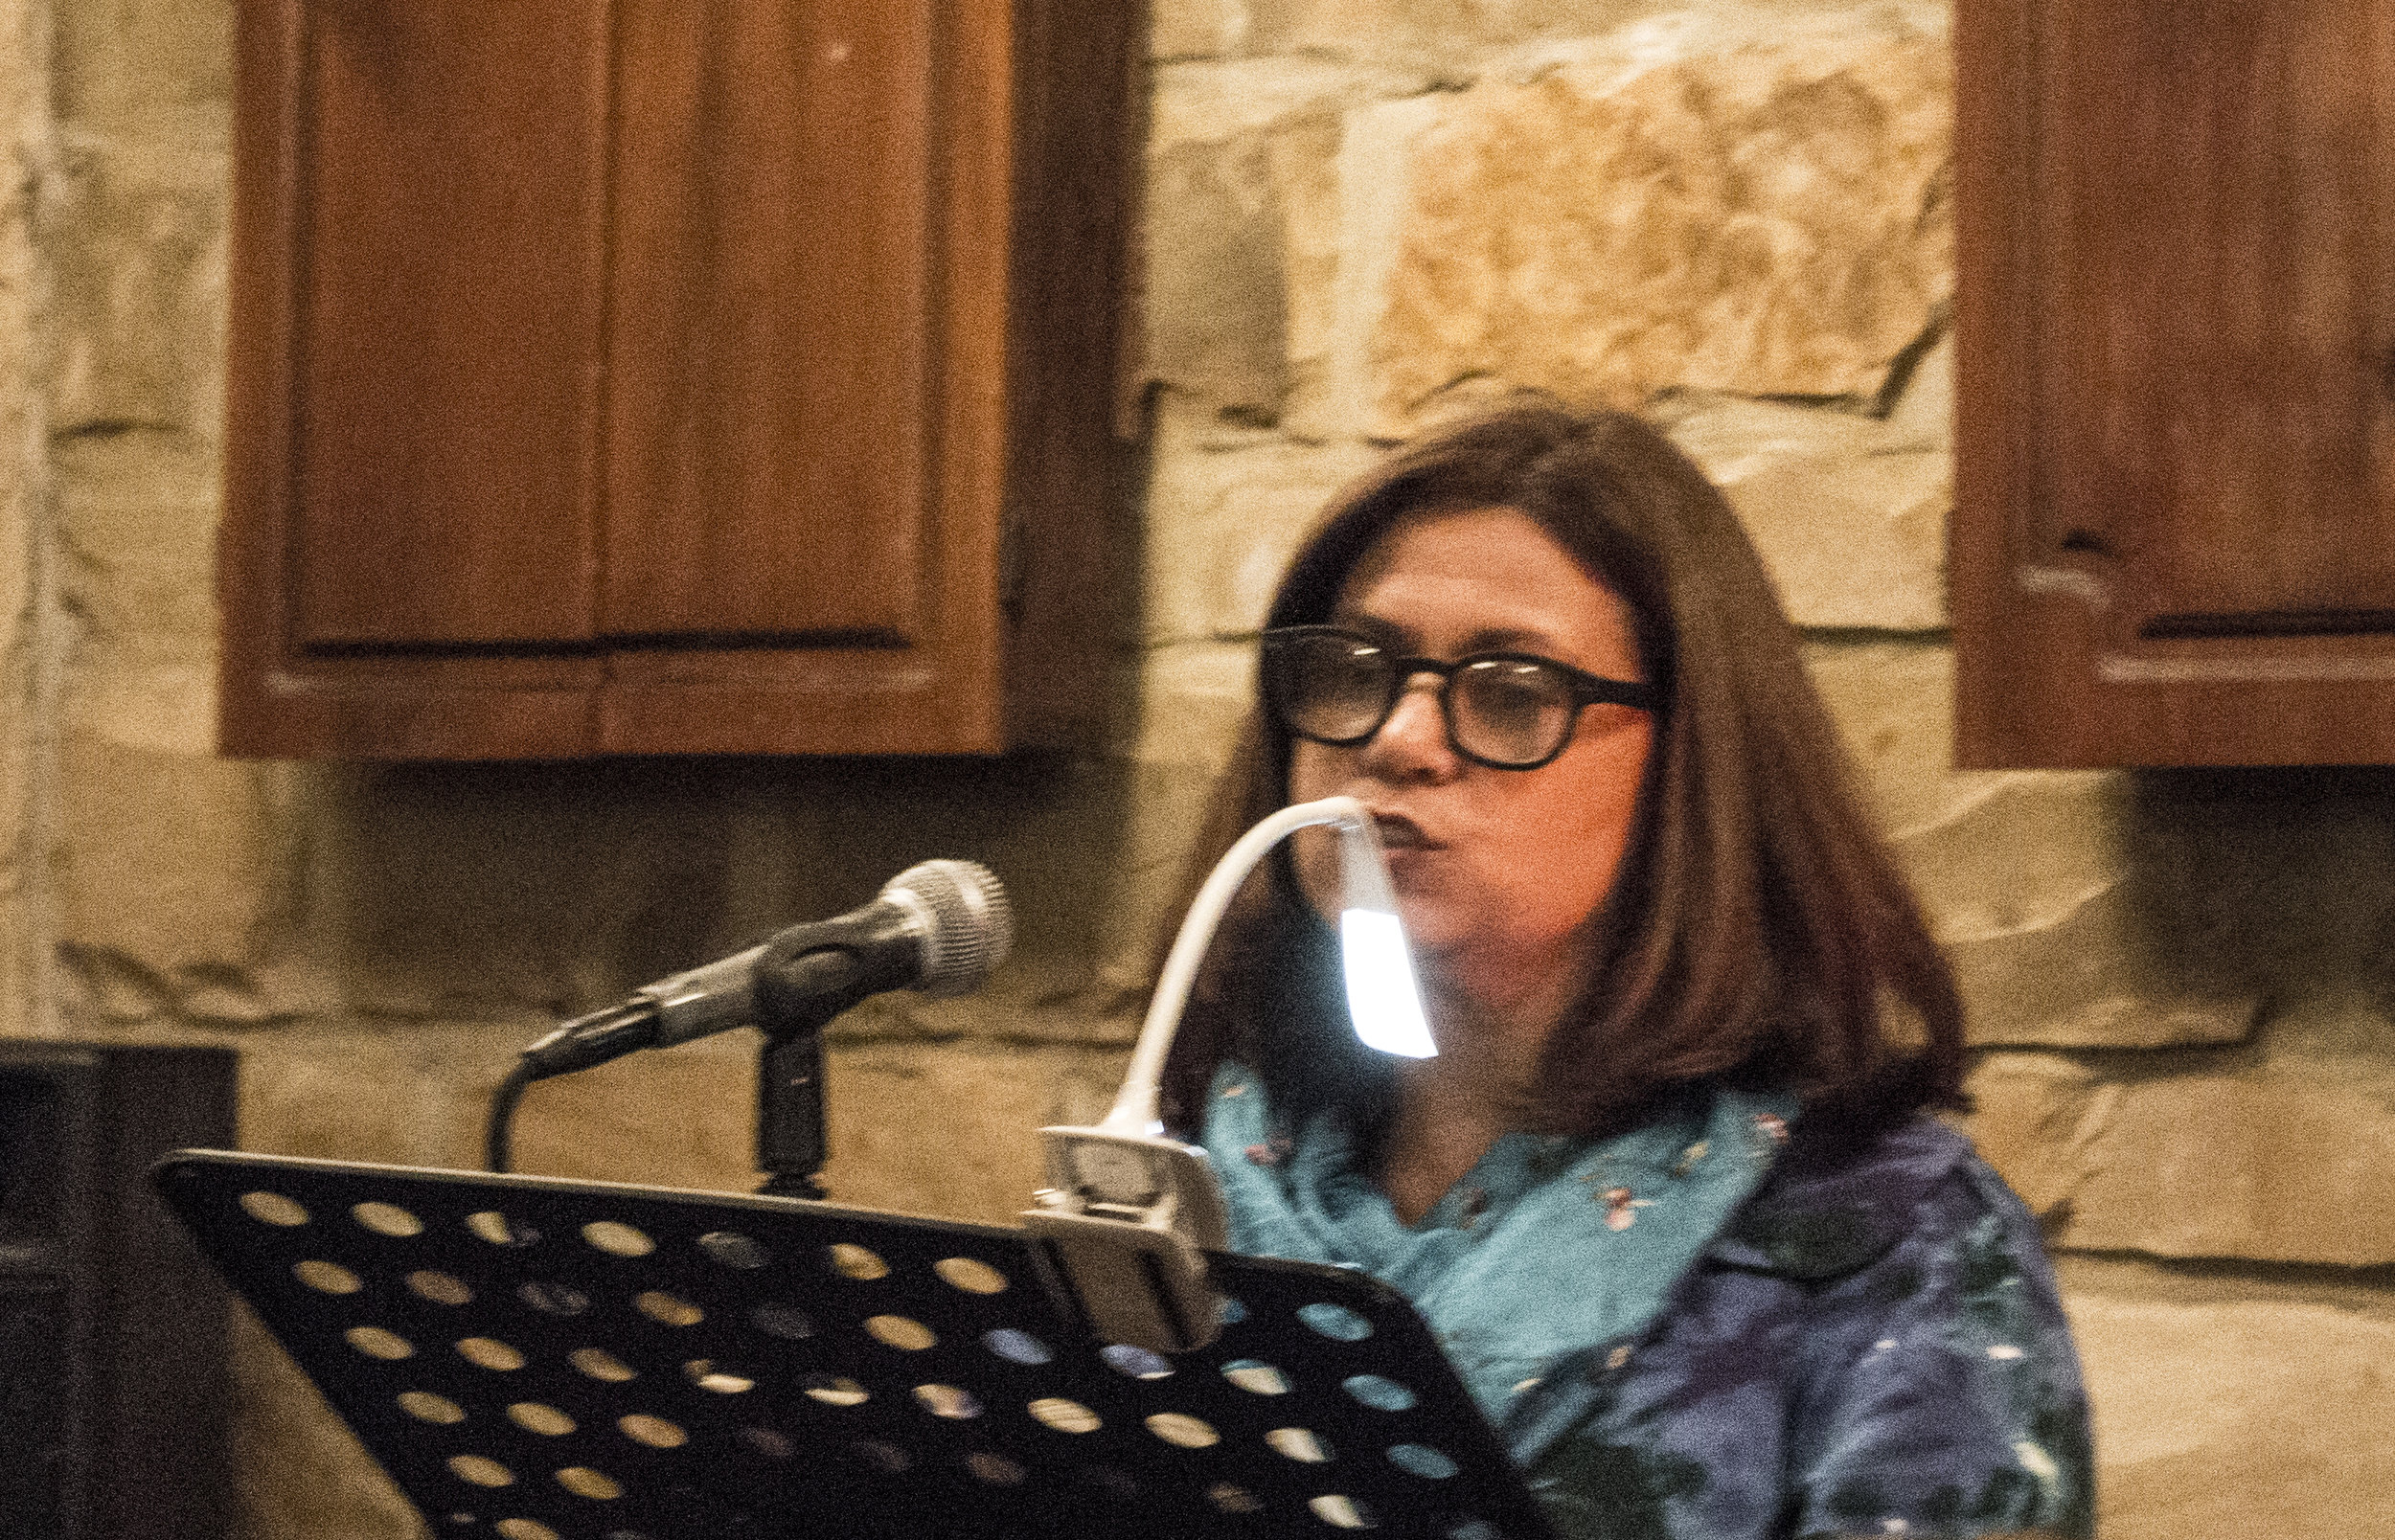 Toni Nealie reads at Sunday Salon